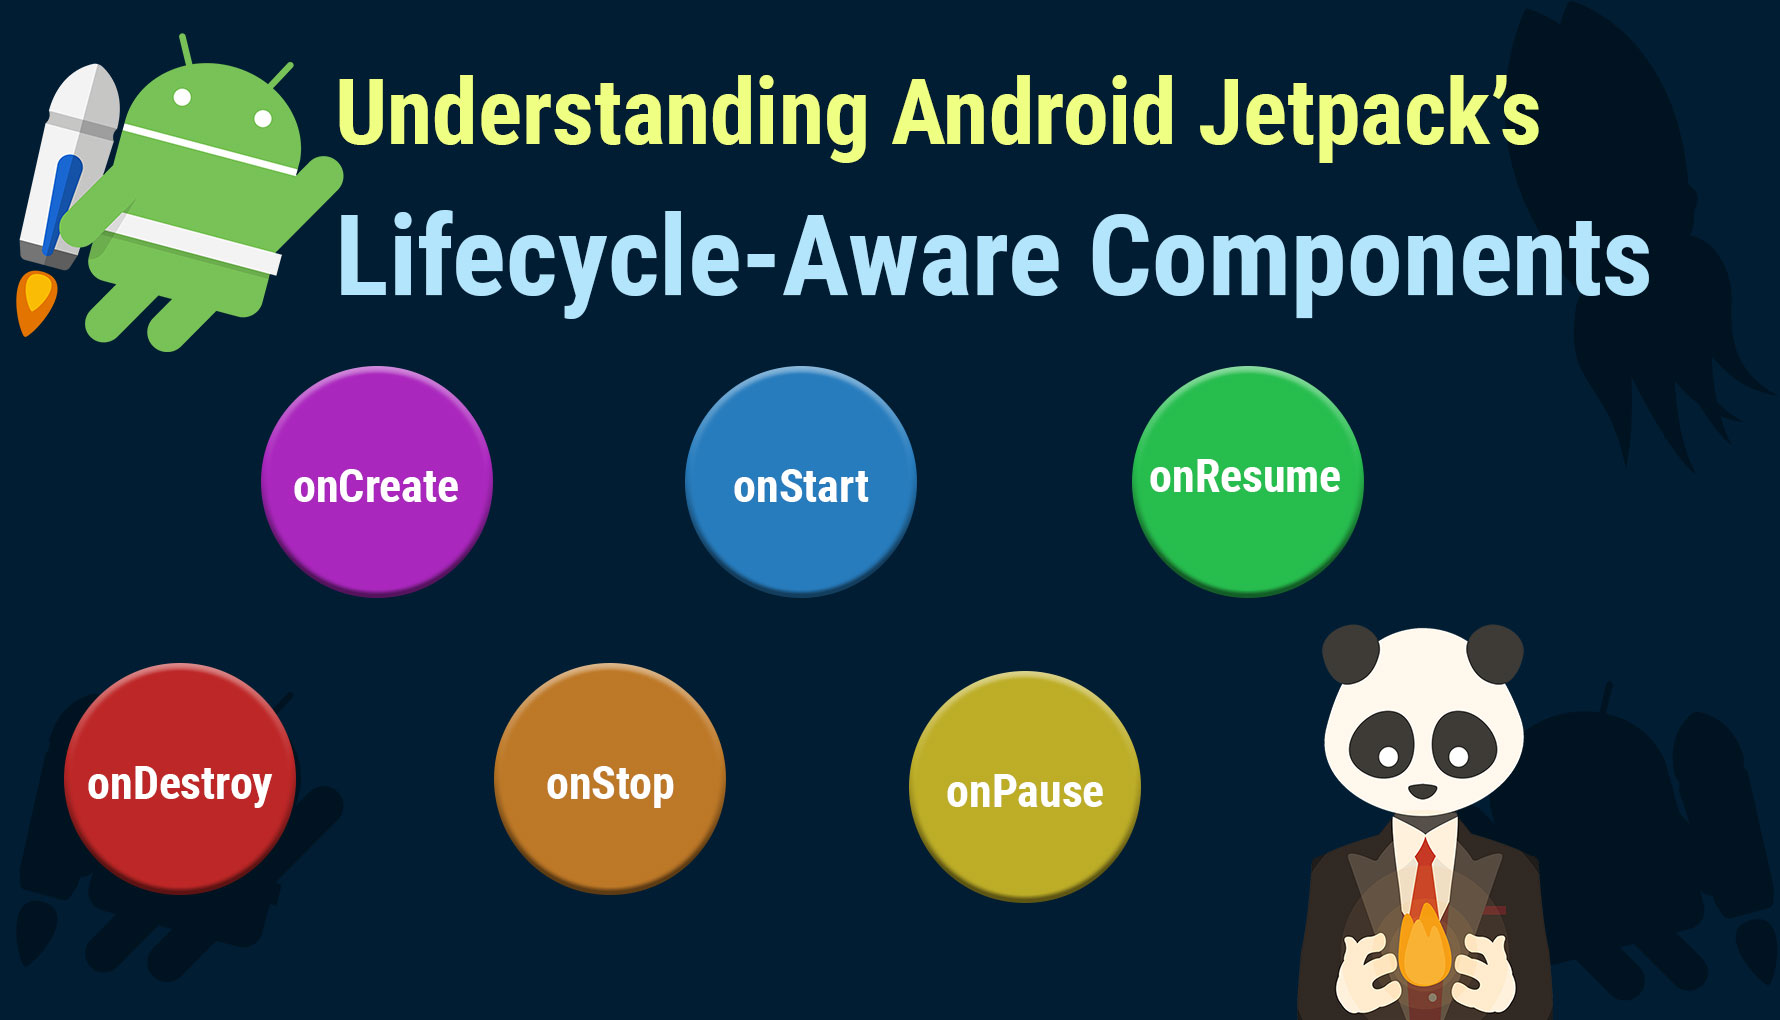 Understanding Lifecycle-Aware Components from Android Jetpack